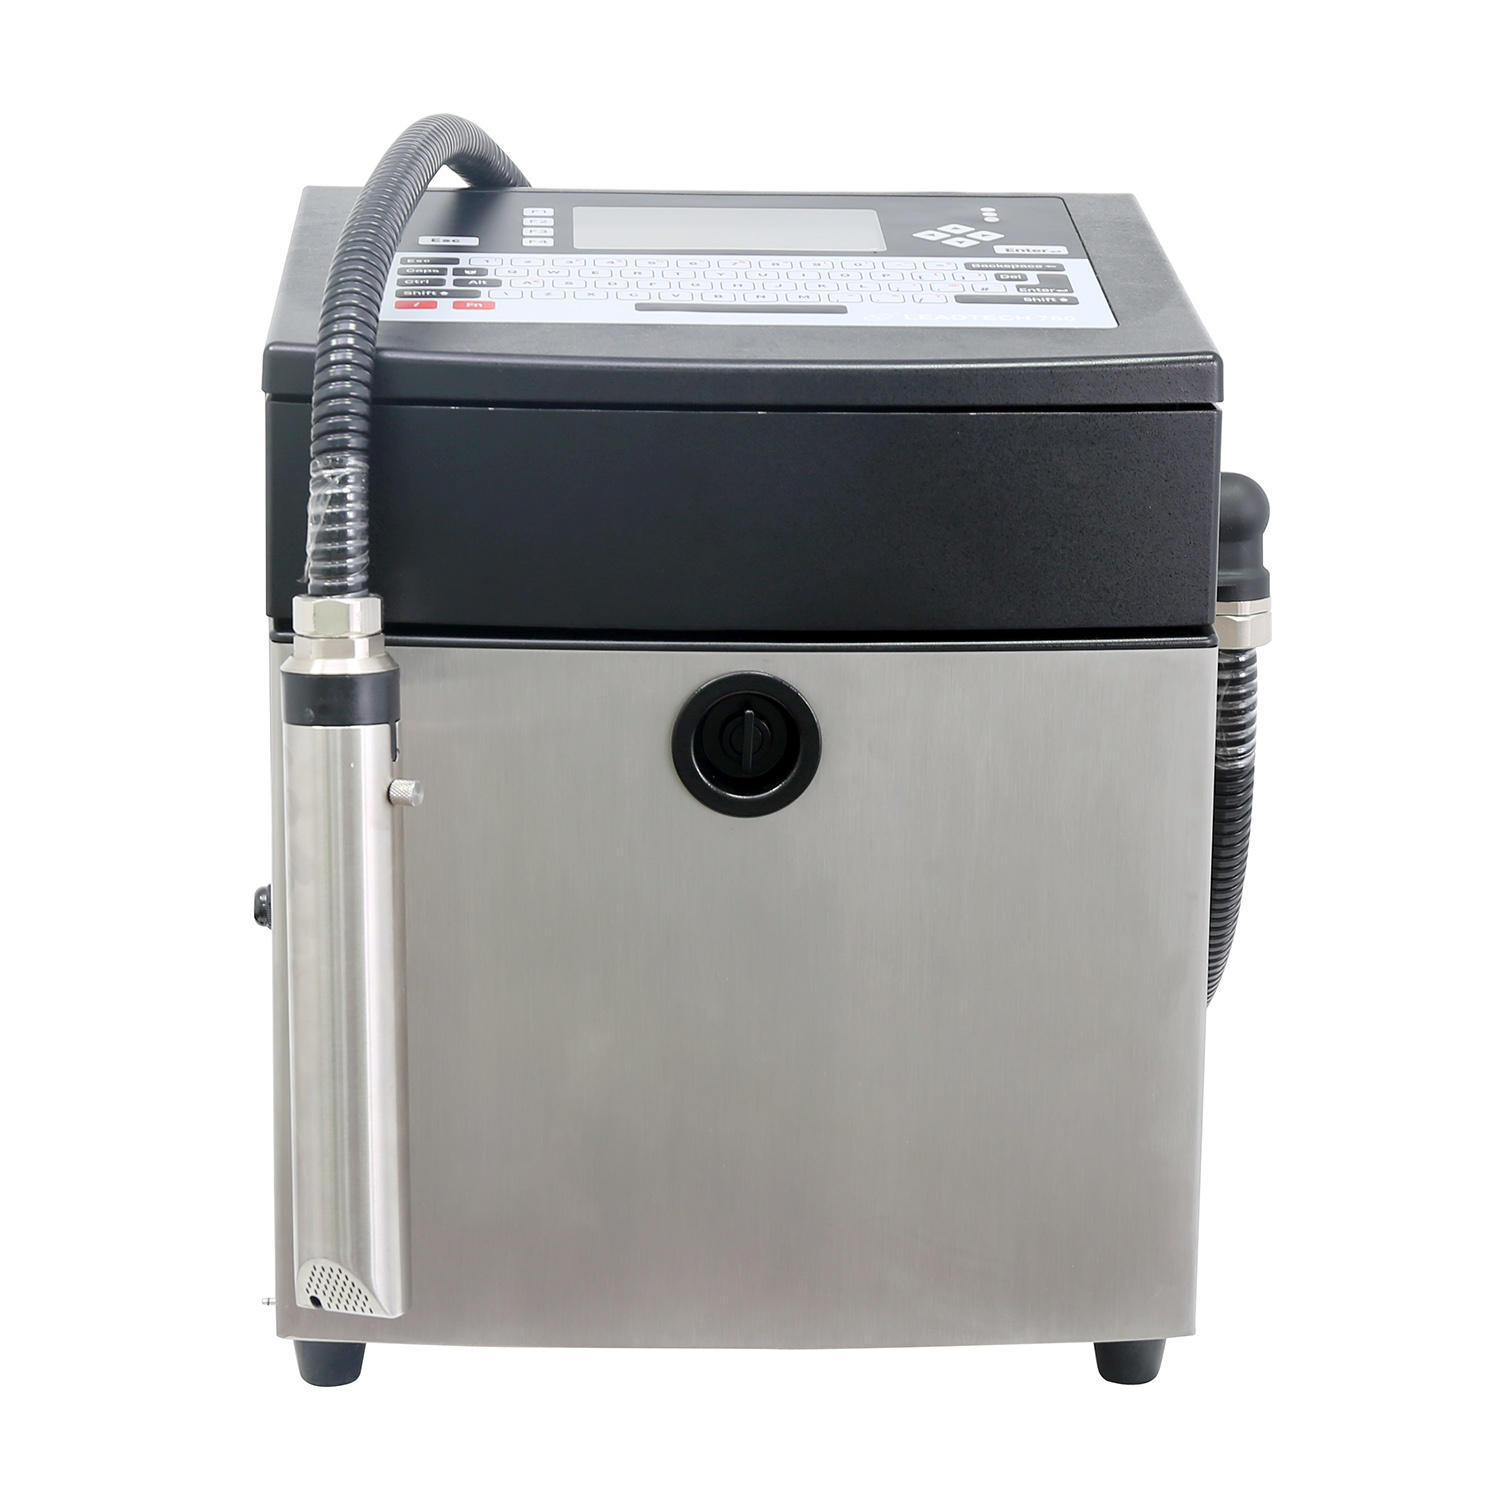 Lead Tech Lt760 High Speed Inkjet Printer